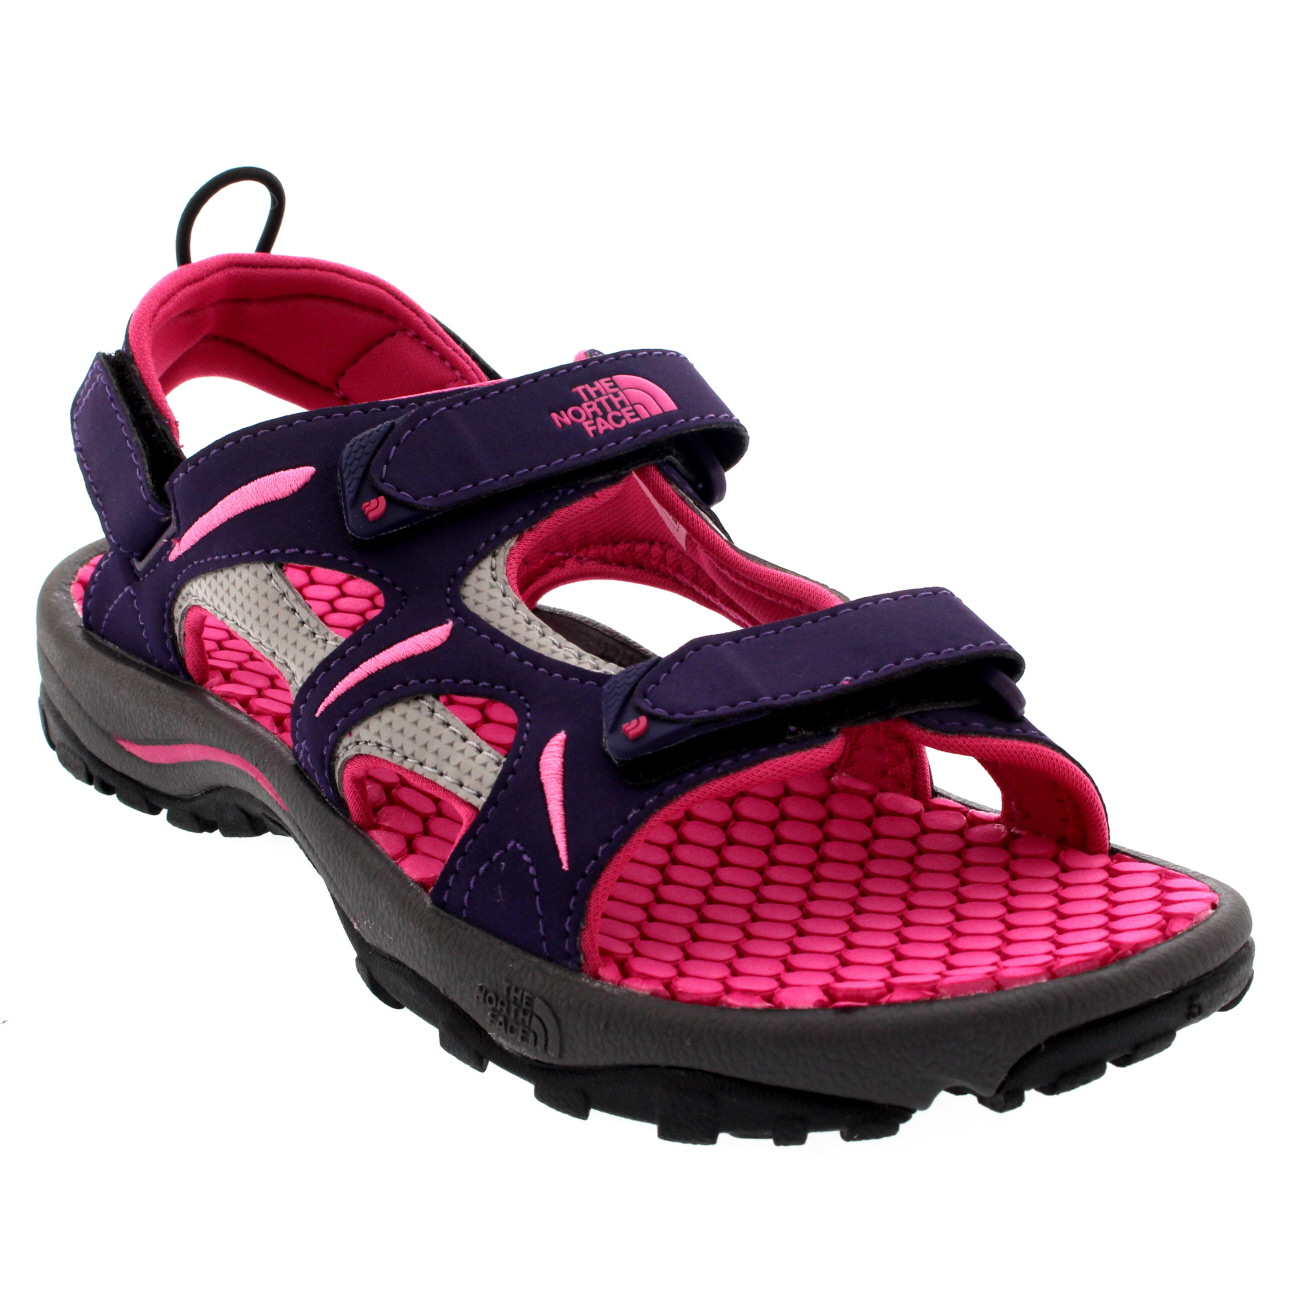 Walking Shoes Ladies North Face